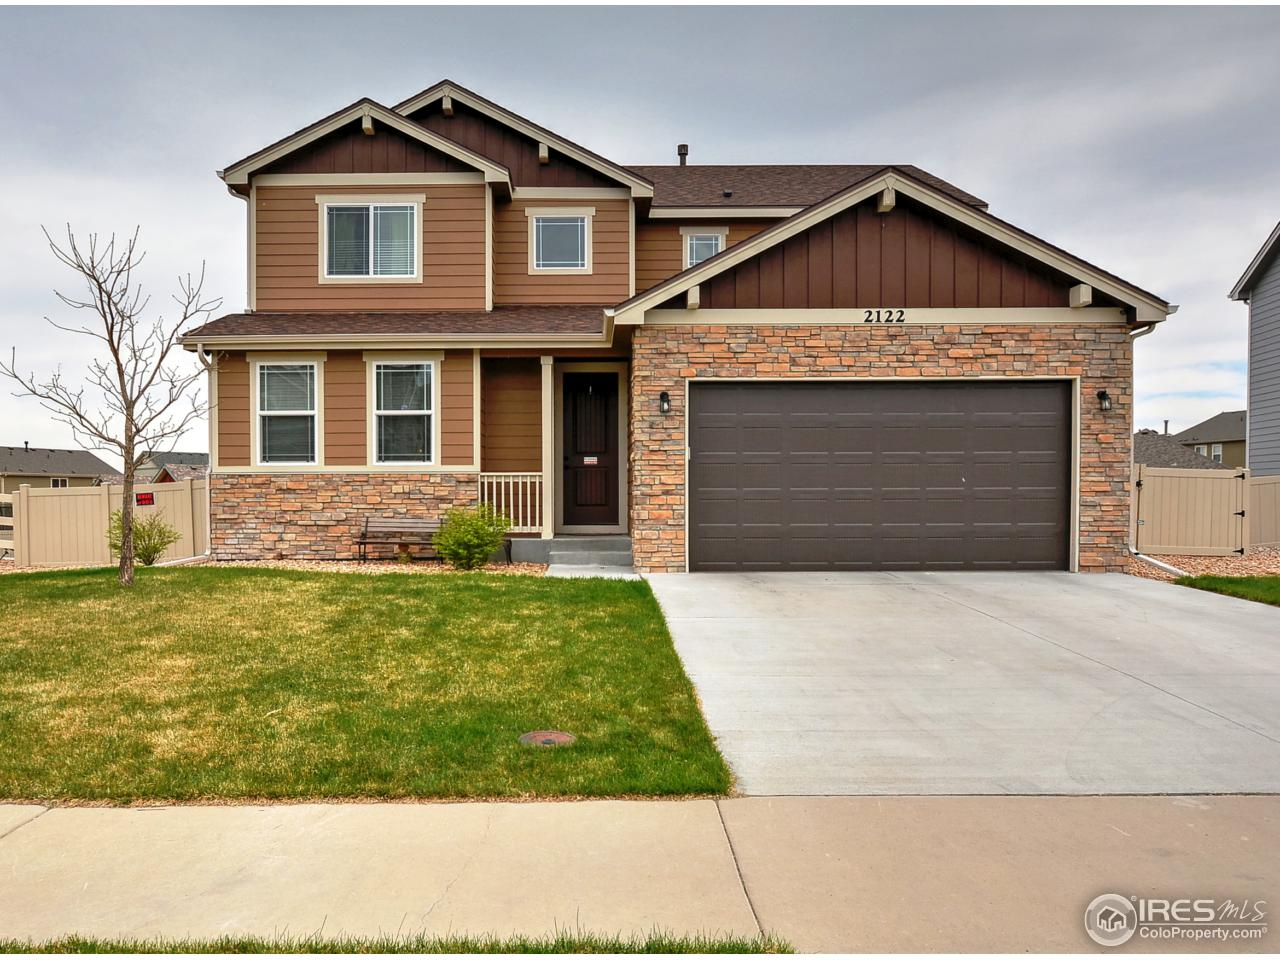 2122 81st Ave, Greeley, CO 80634